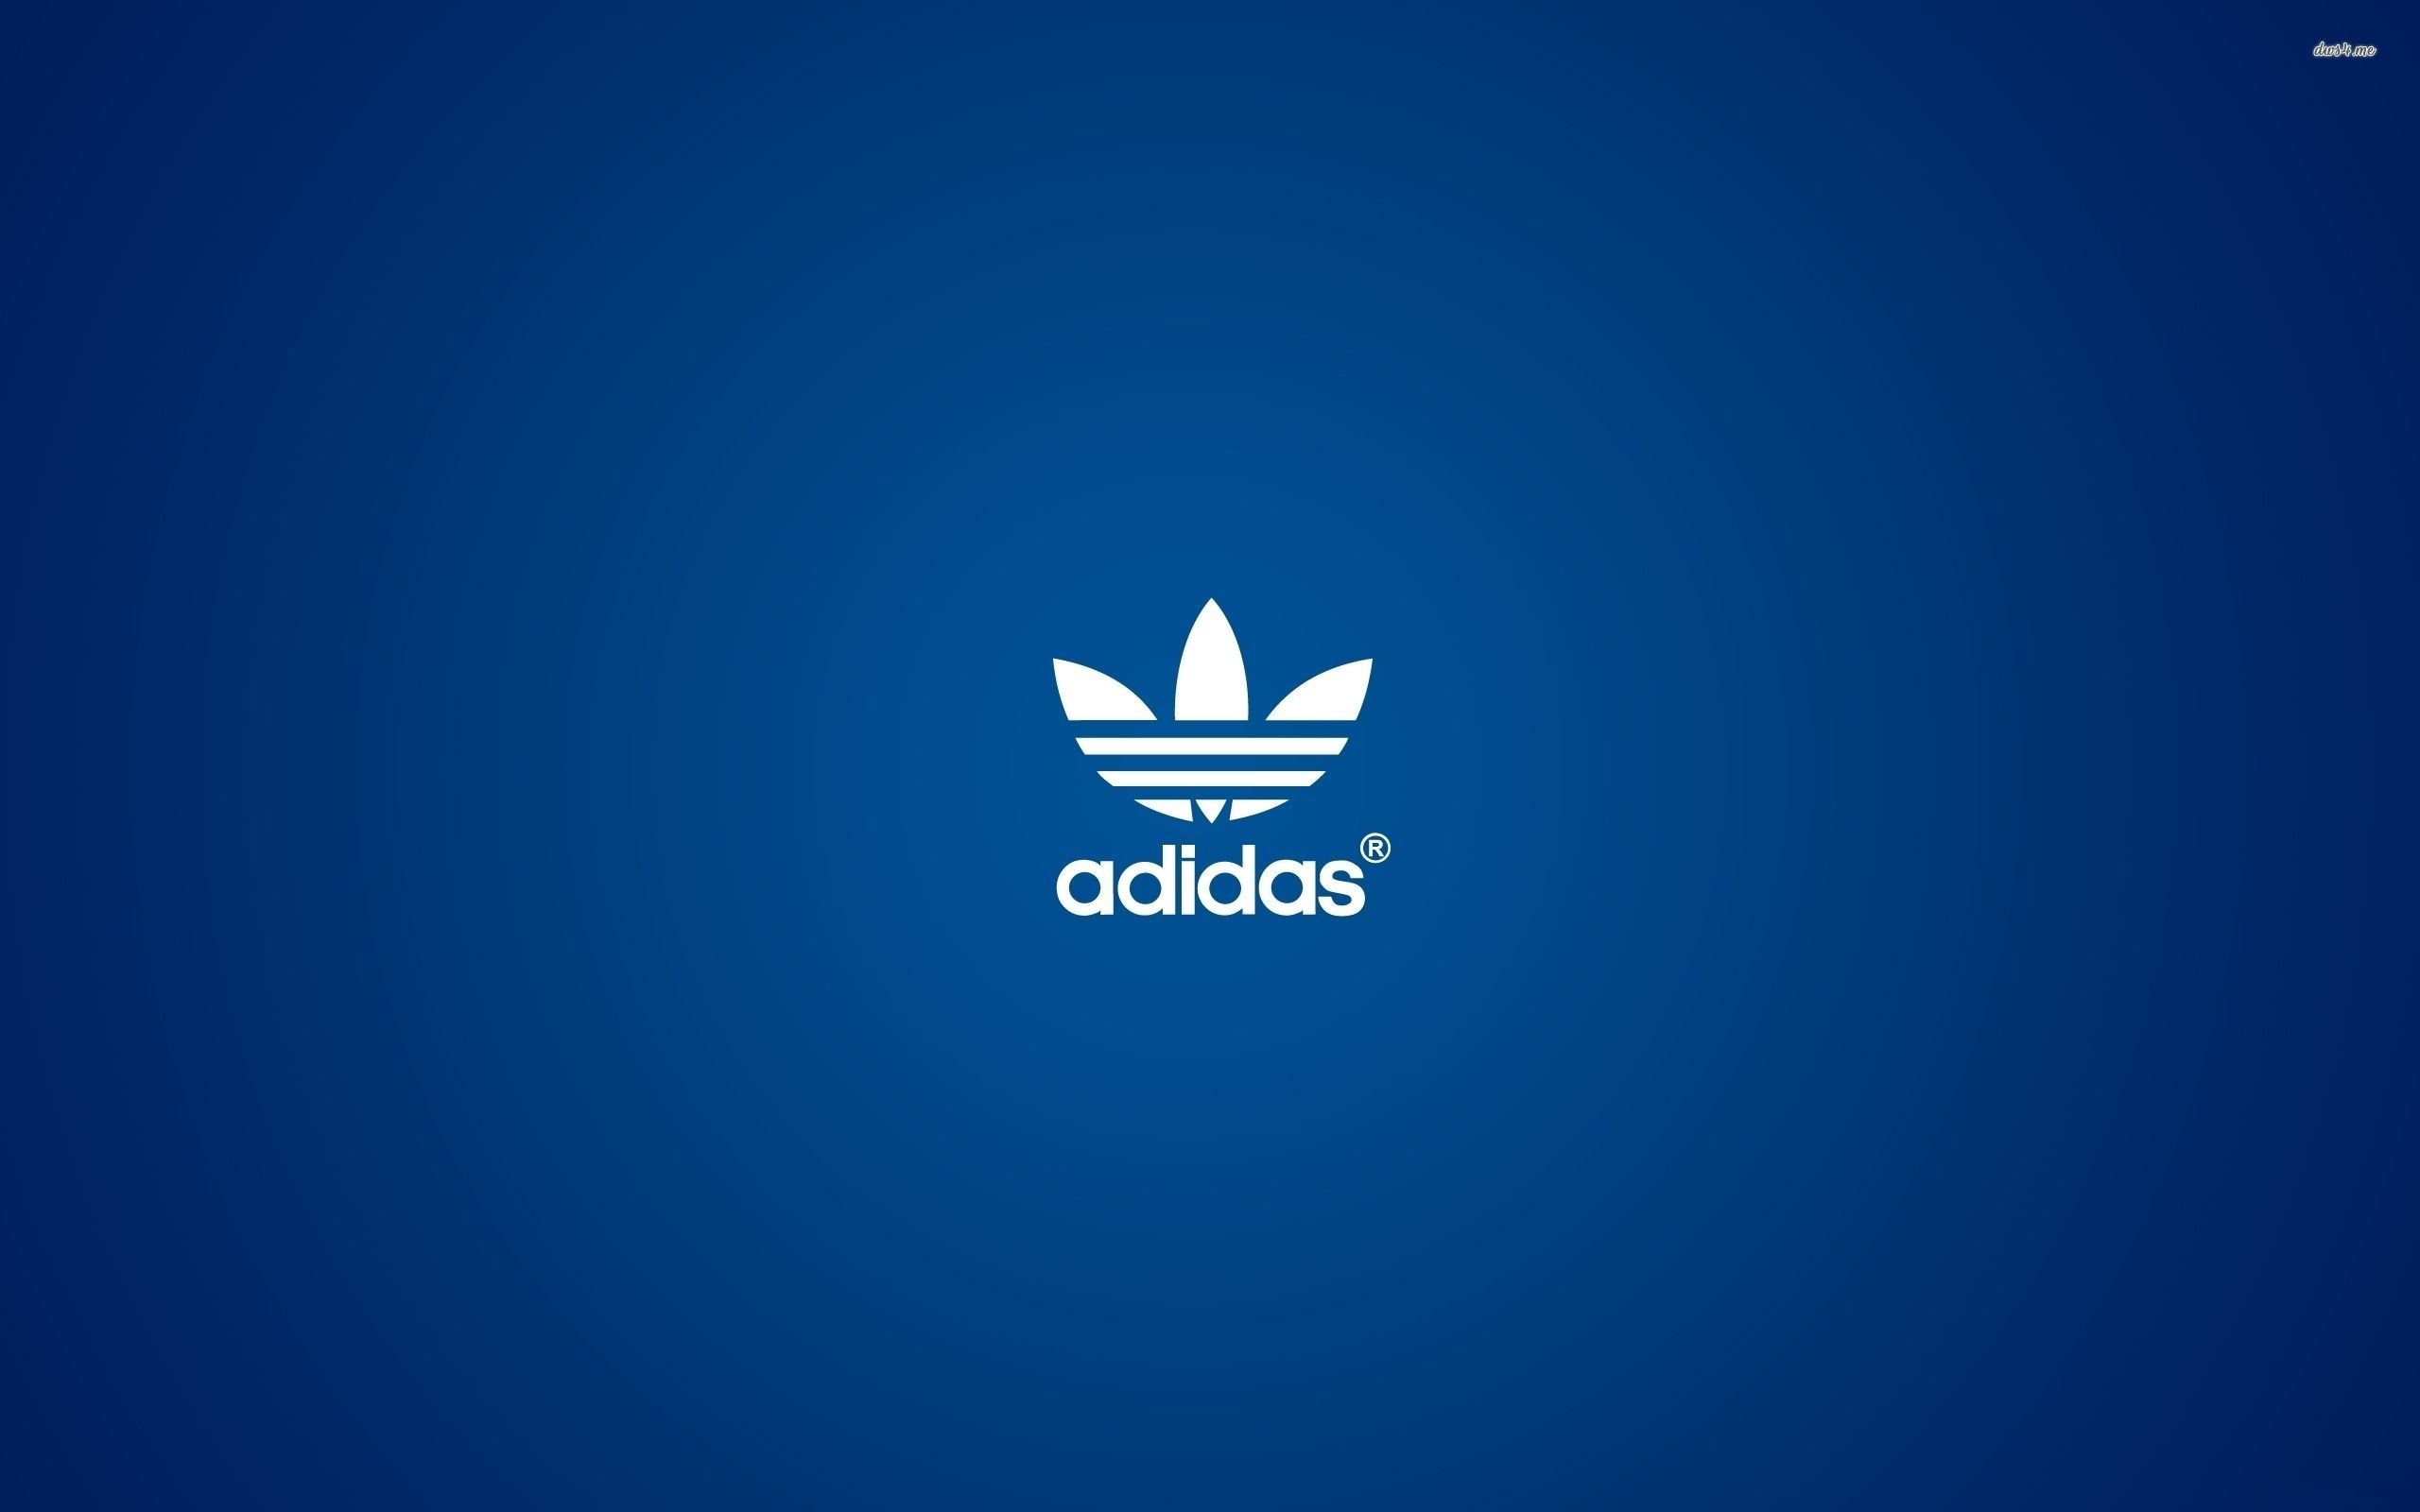 Logo Adidas Wallpaper   52DazheW Gallery 2560x1600